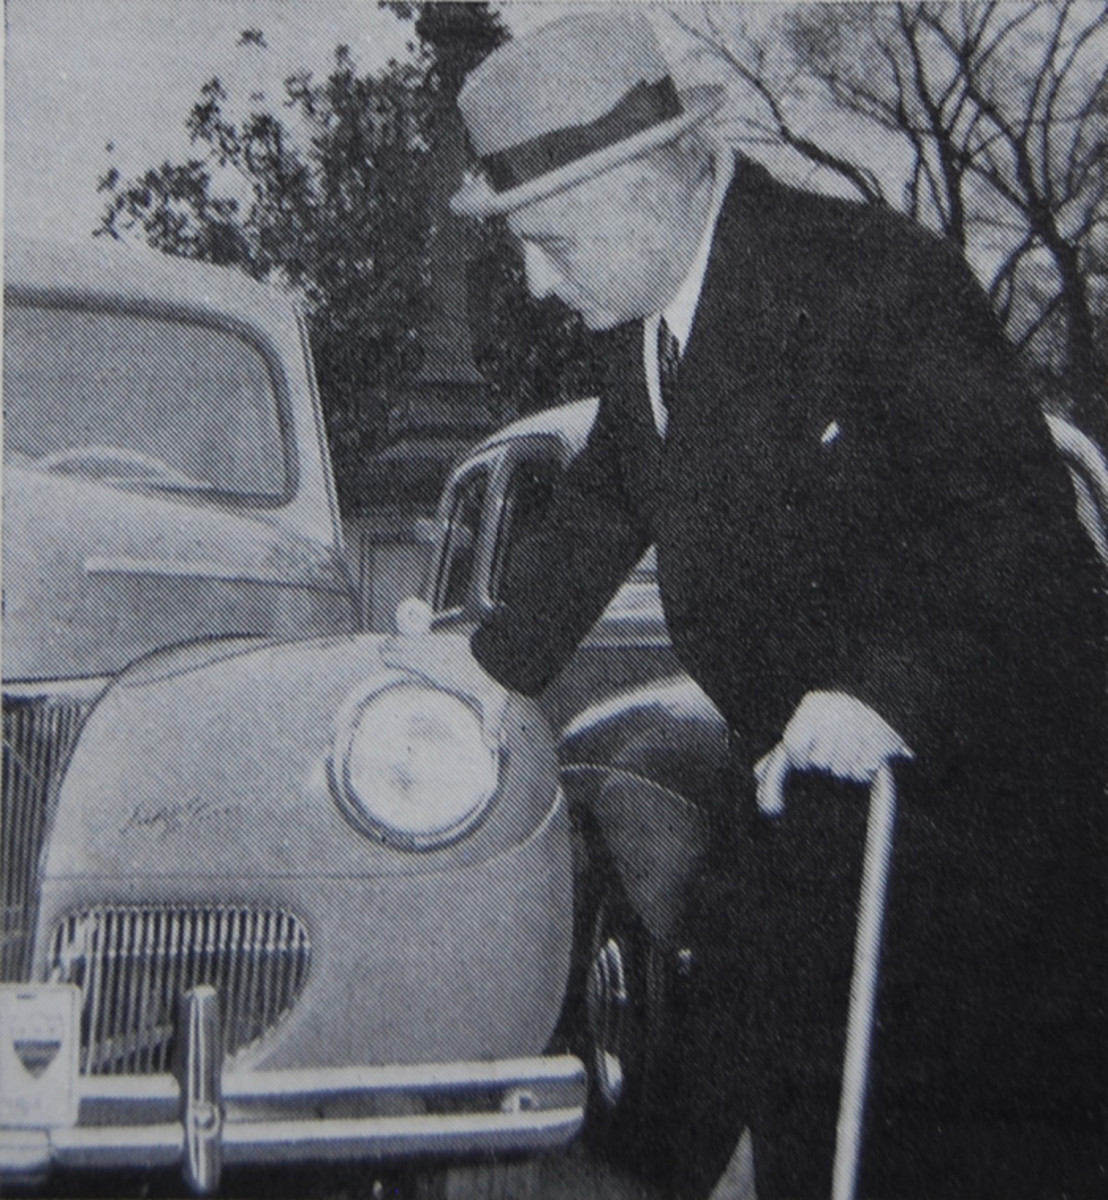 Inauguration's General Chairman Joseph E. Davies inspected one of the Fords.